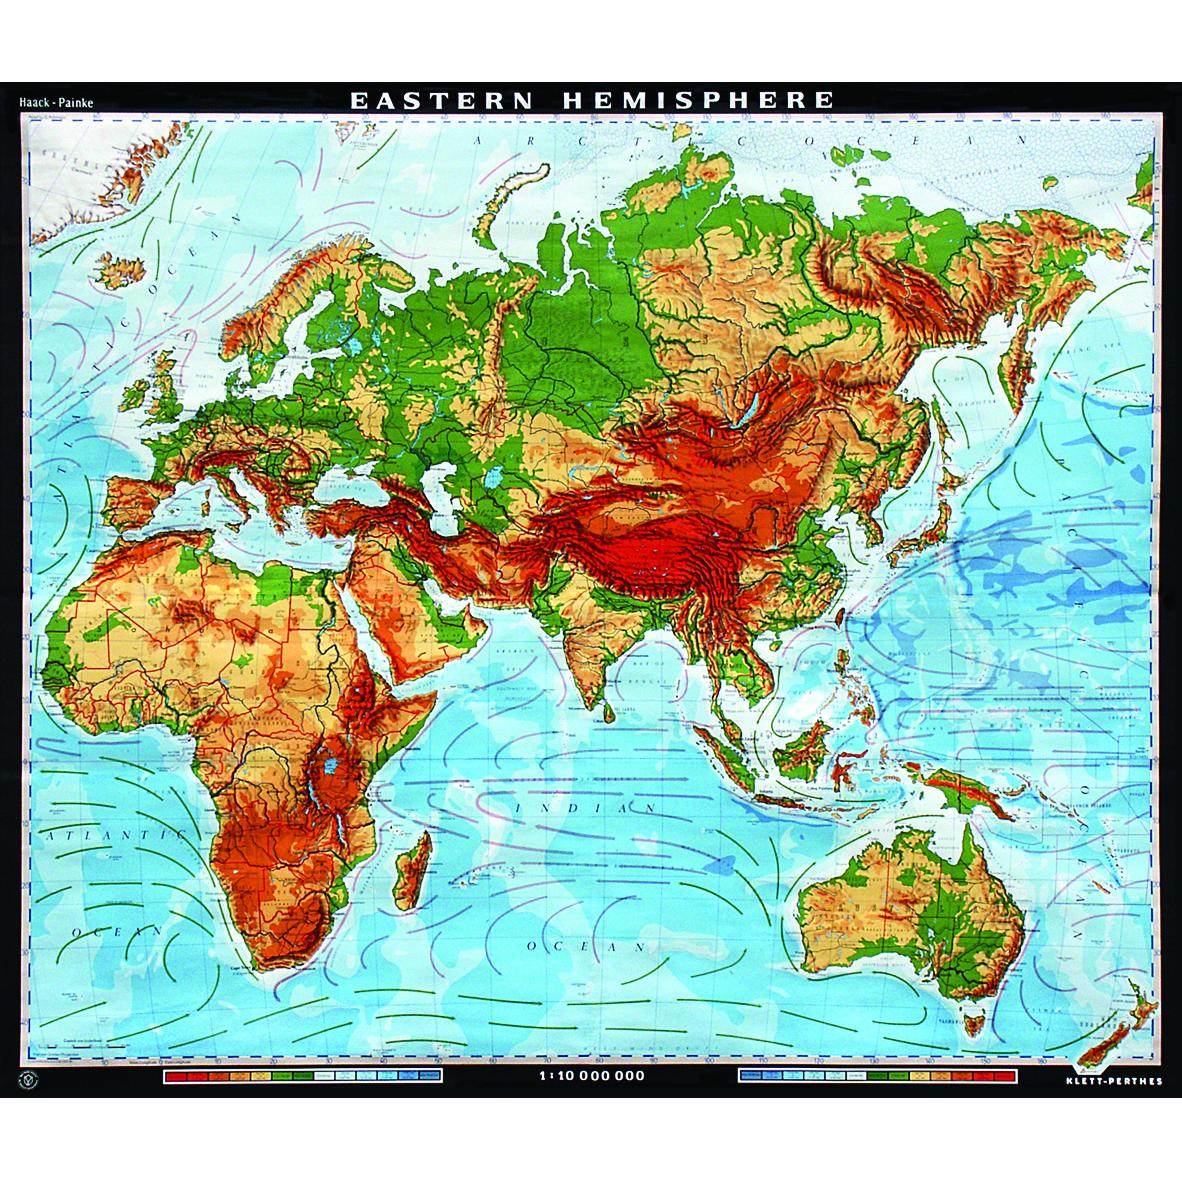 The Eastern Hemisphere Physical Map